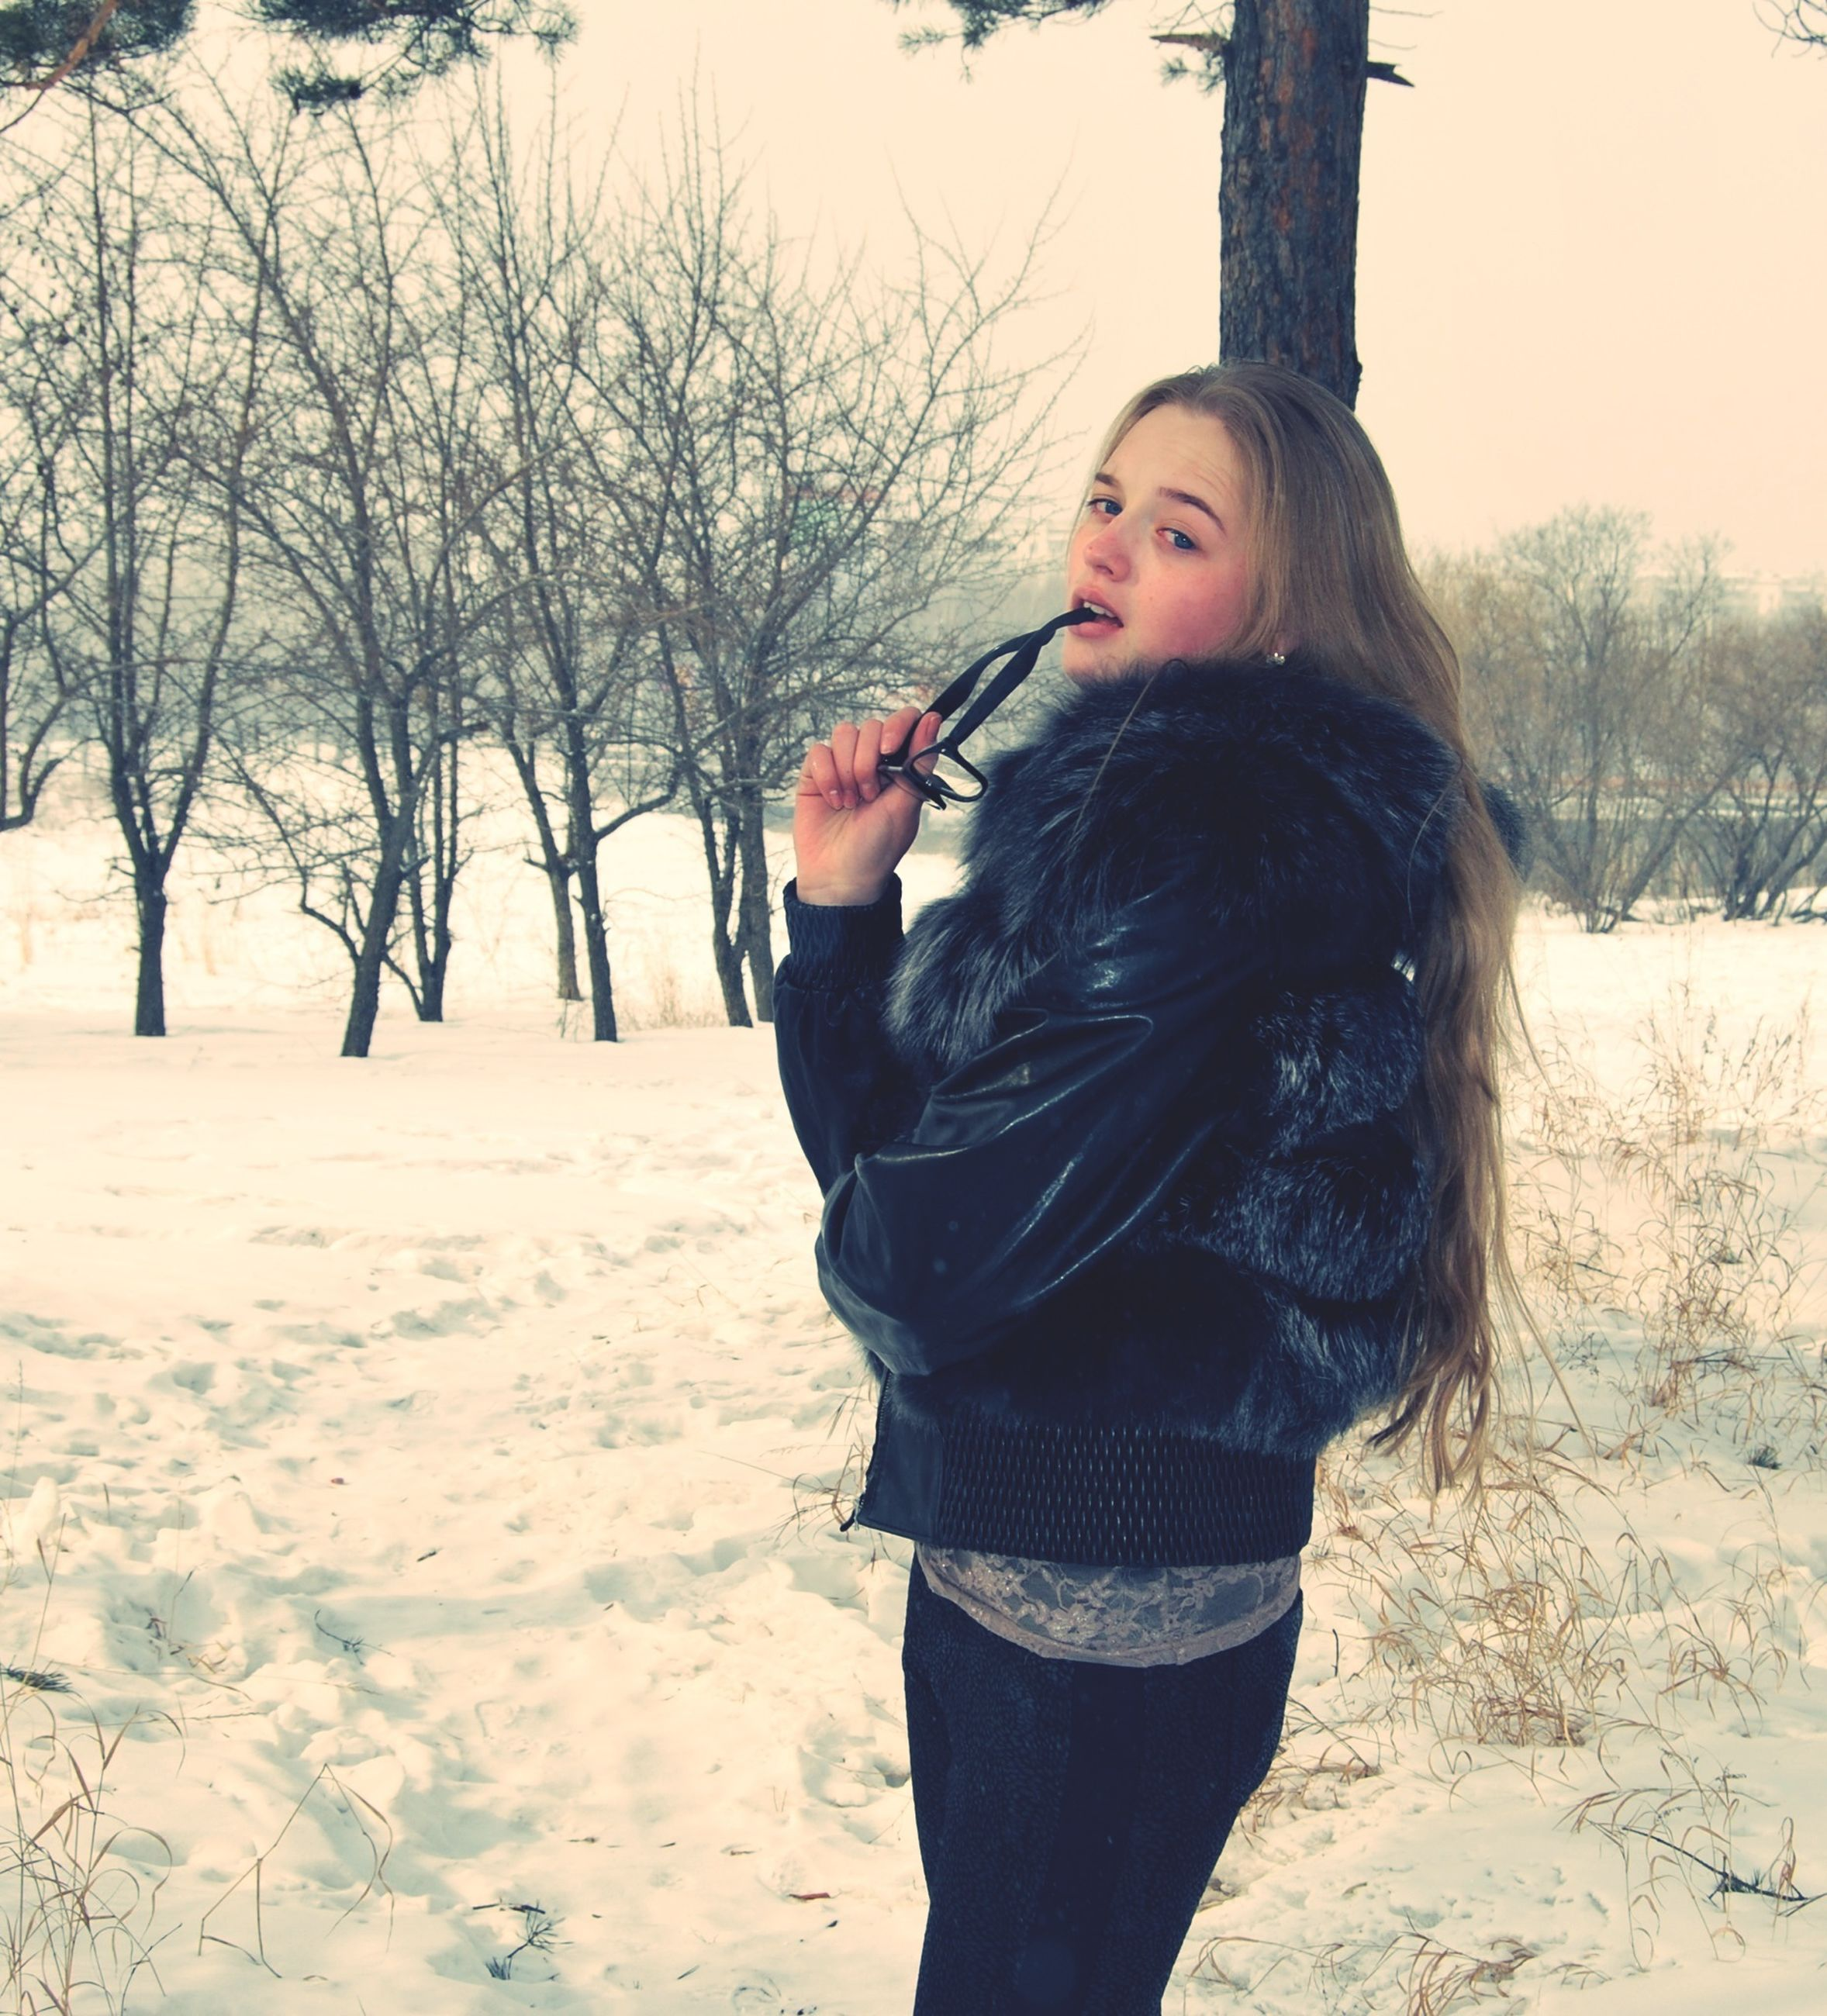 lifestyles, person, leisure activity, young adult, casual clothing, young women, standing, full length, front view, winter, tree, looking at camera, portrait, long hair, three quarter length, snow, smiling, happiness